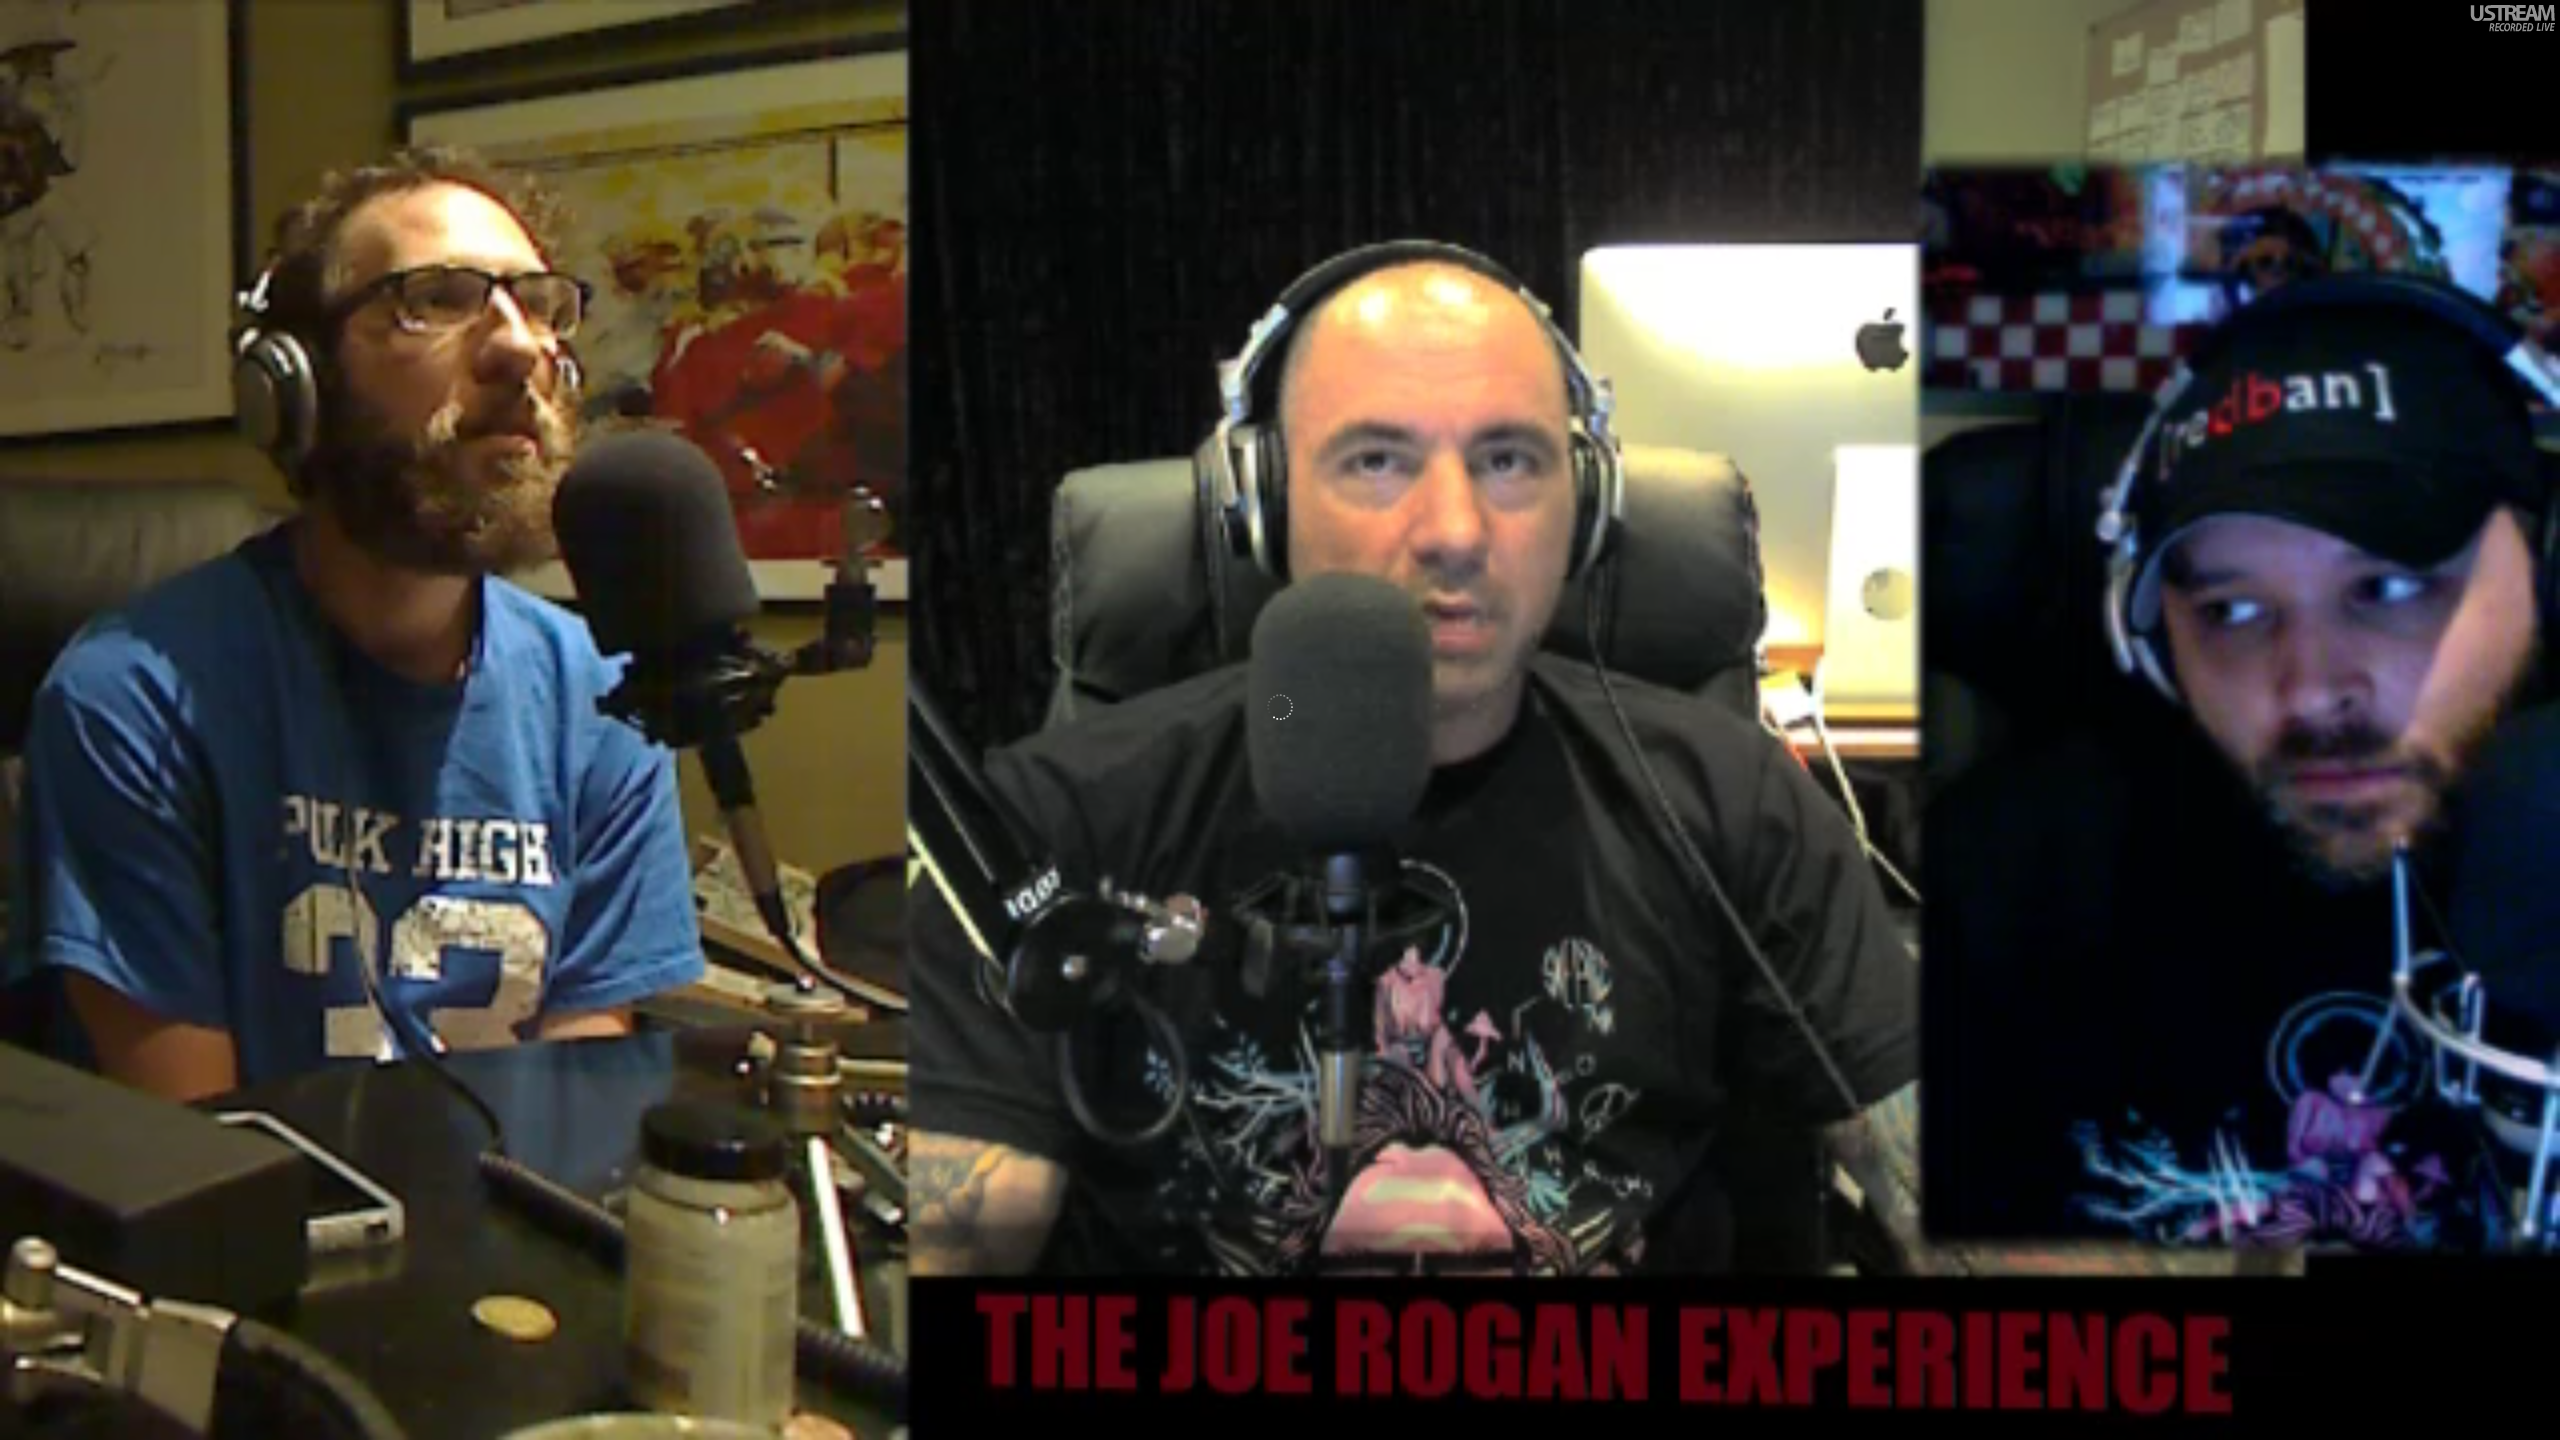 The Joe Rogan Experience #211 - Ari Shaffir, Brian Redban